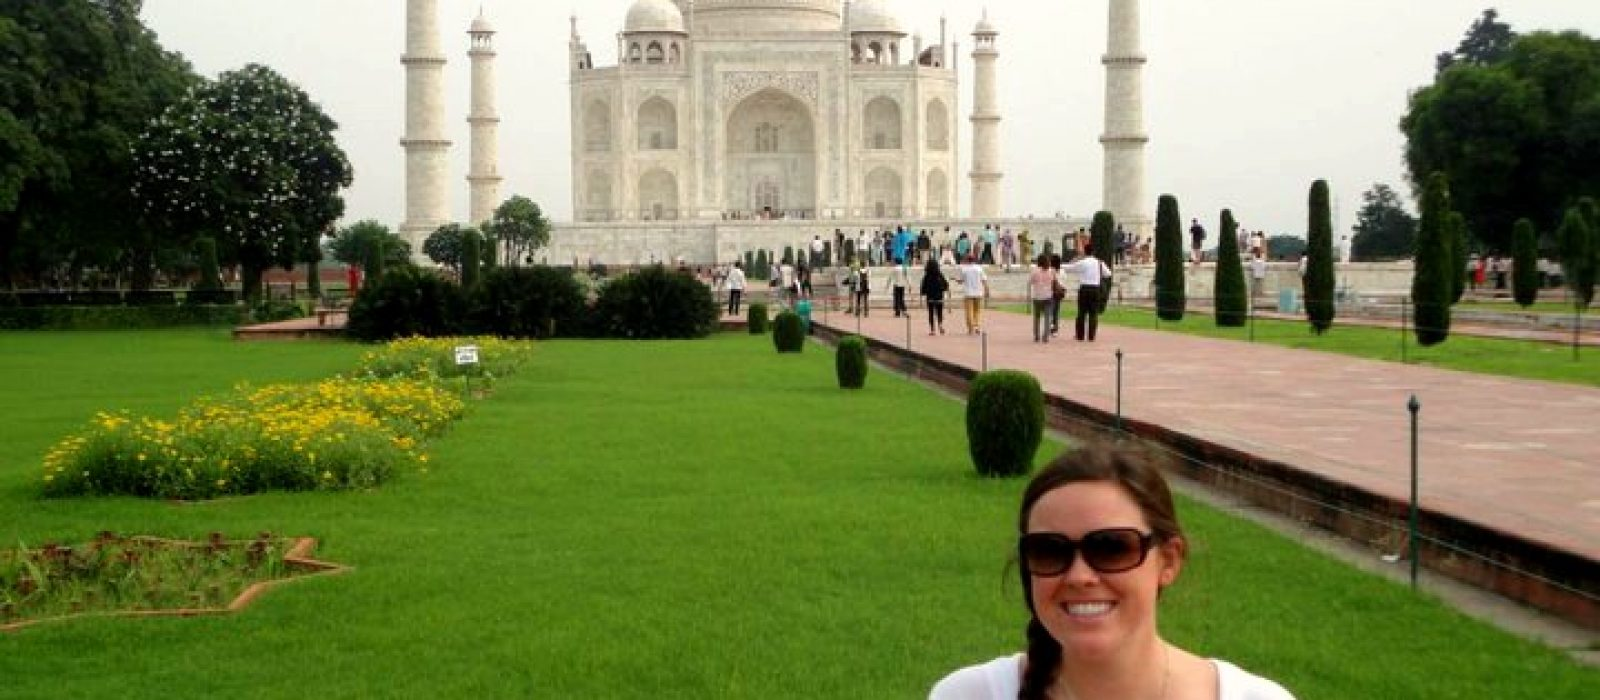 Full-Time Corporate Trainer, Part-Time Traveler: Interview with Katie